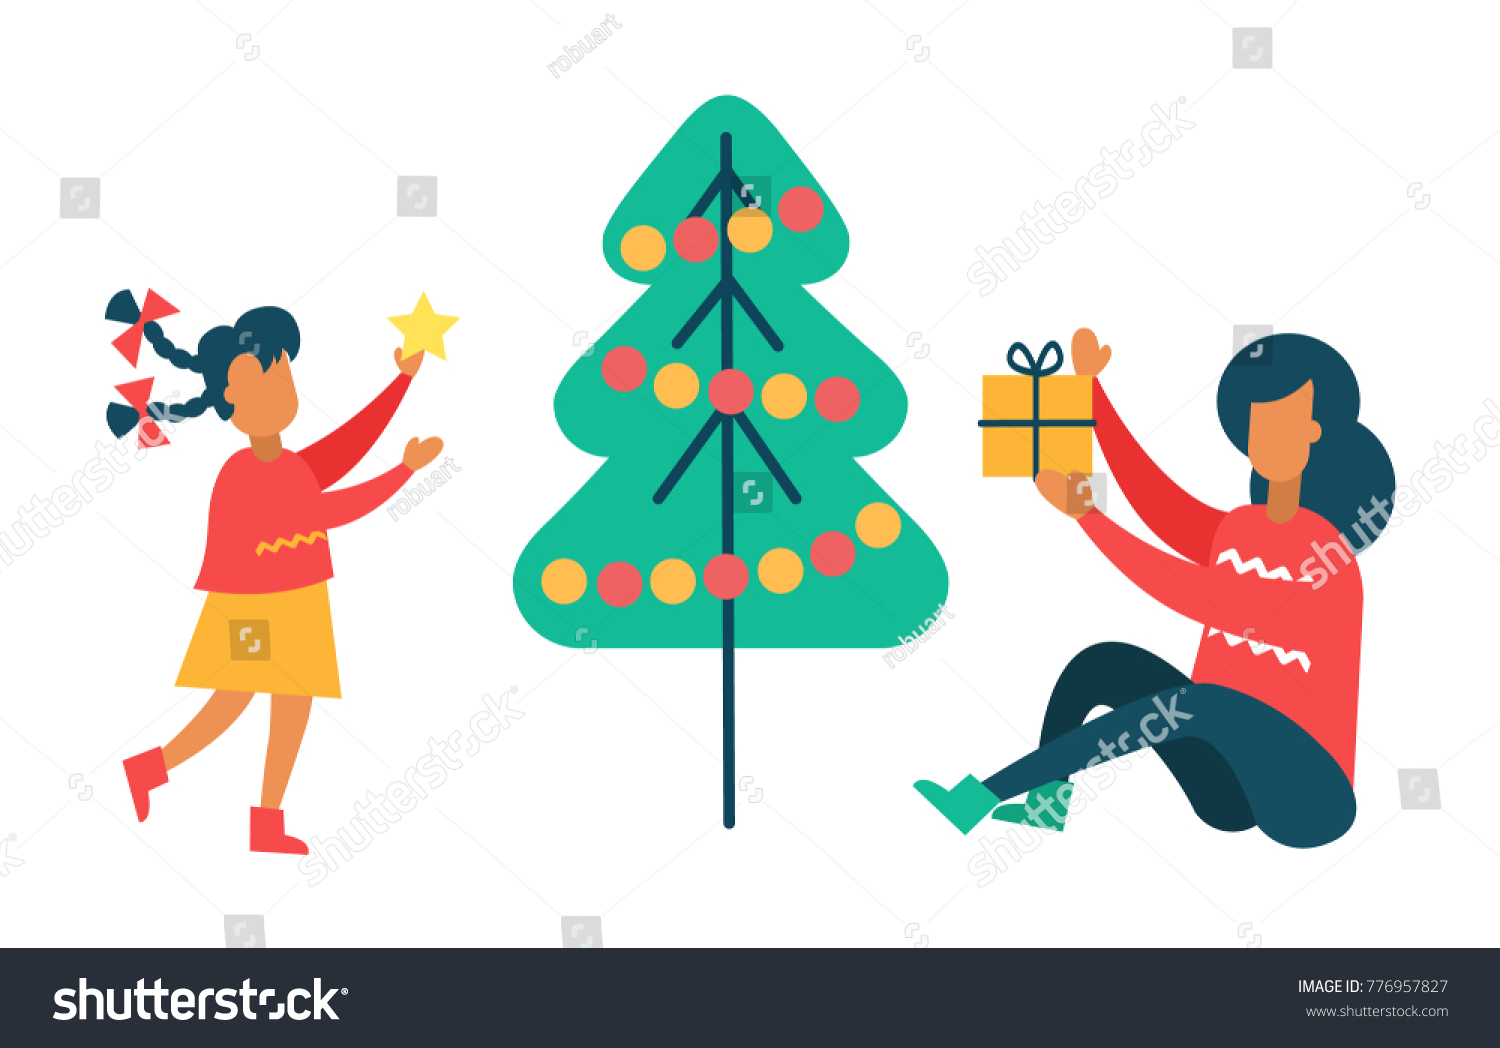 422ec934 Girl decorates New Year tree putting star on top, pine with color balls,  mother going to hide gift under Christmas spruce with garlands vector -  Vector